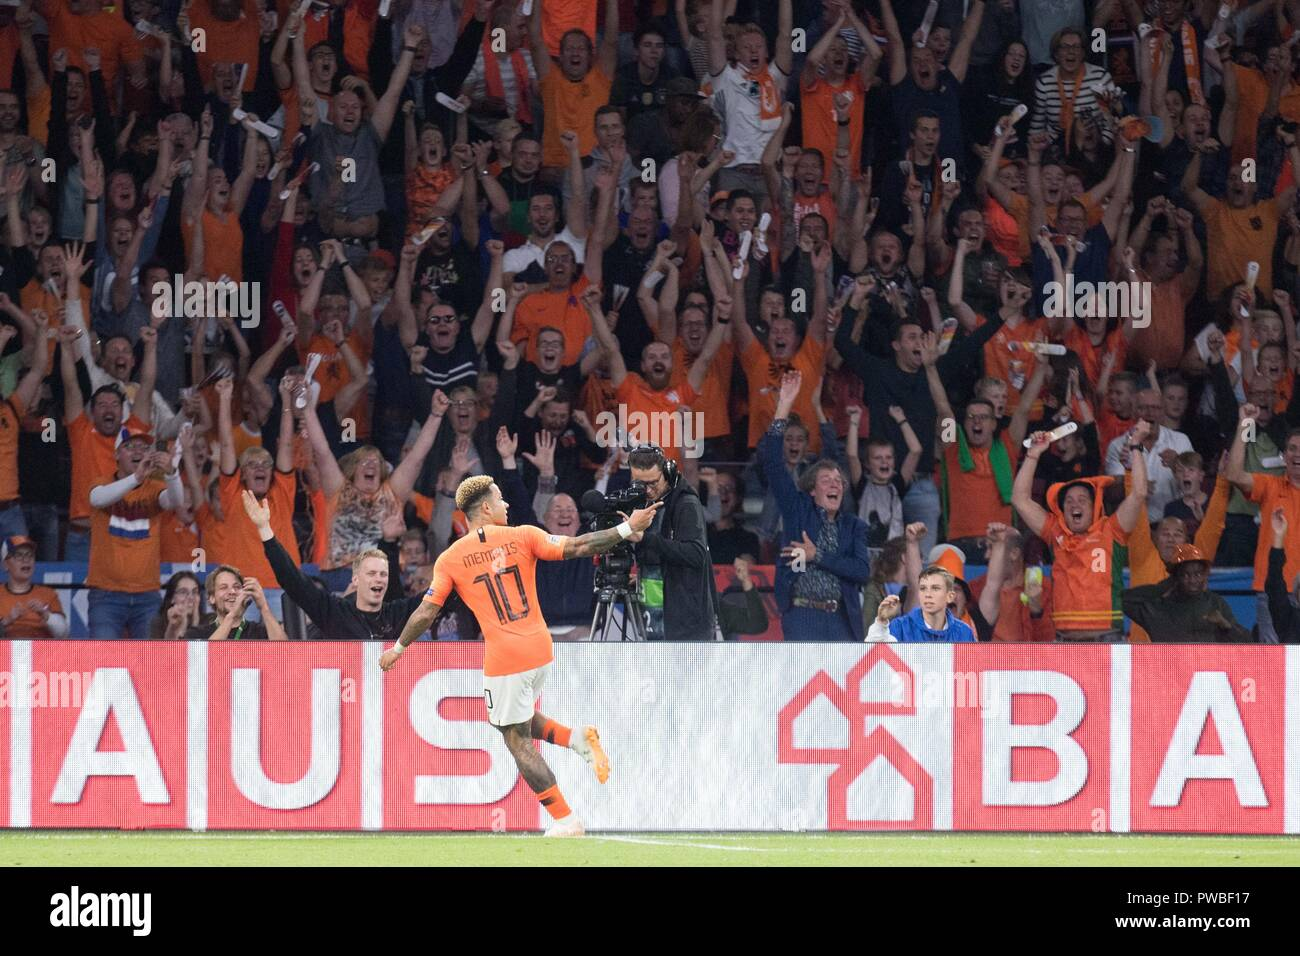 goalkeeper Memphis DEPAY (NED) and the dutch fans cheer on